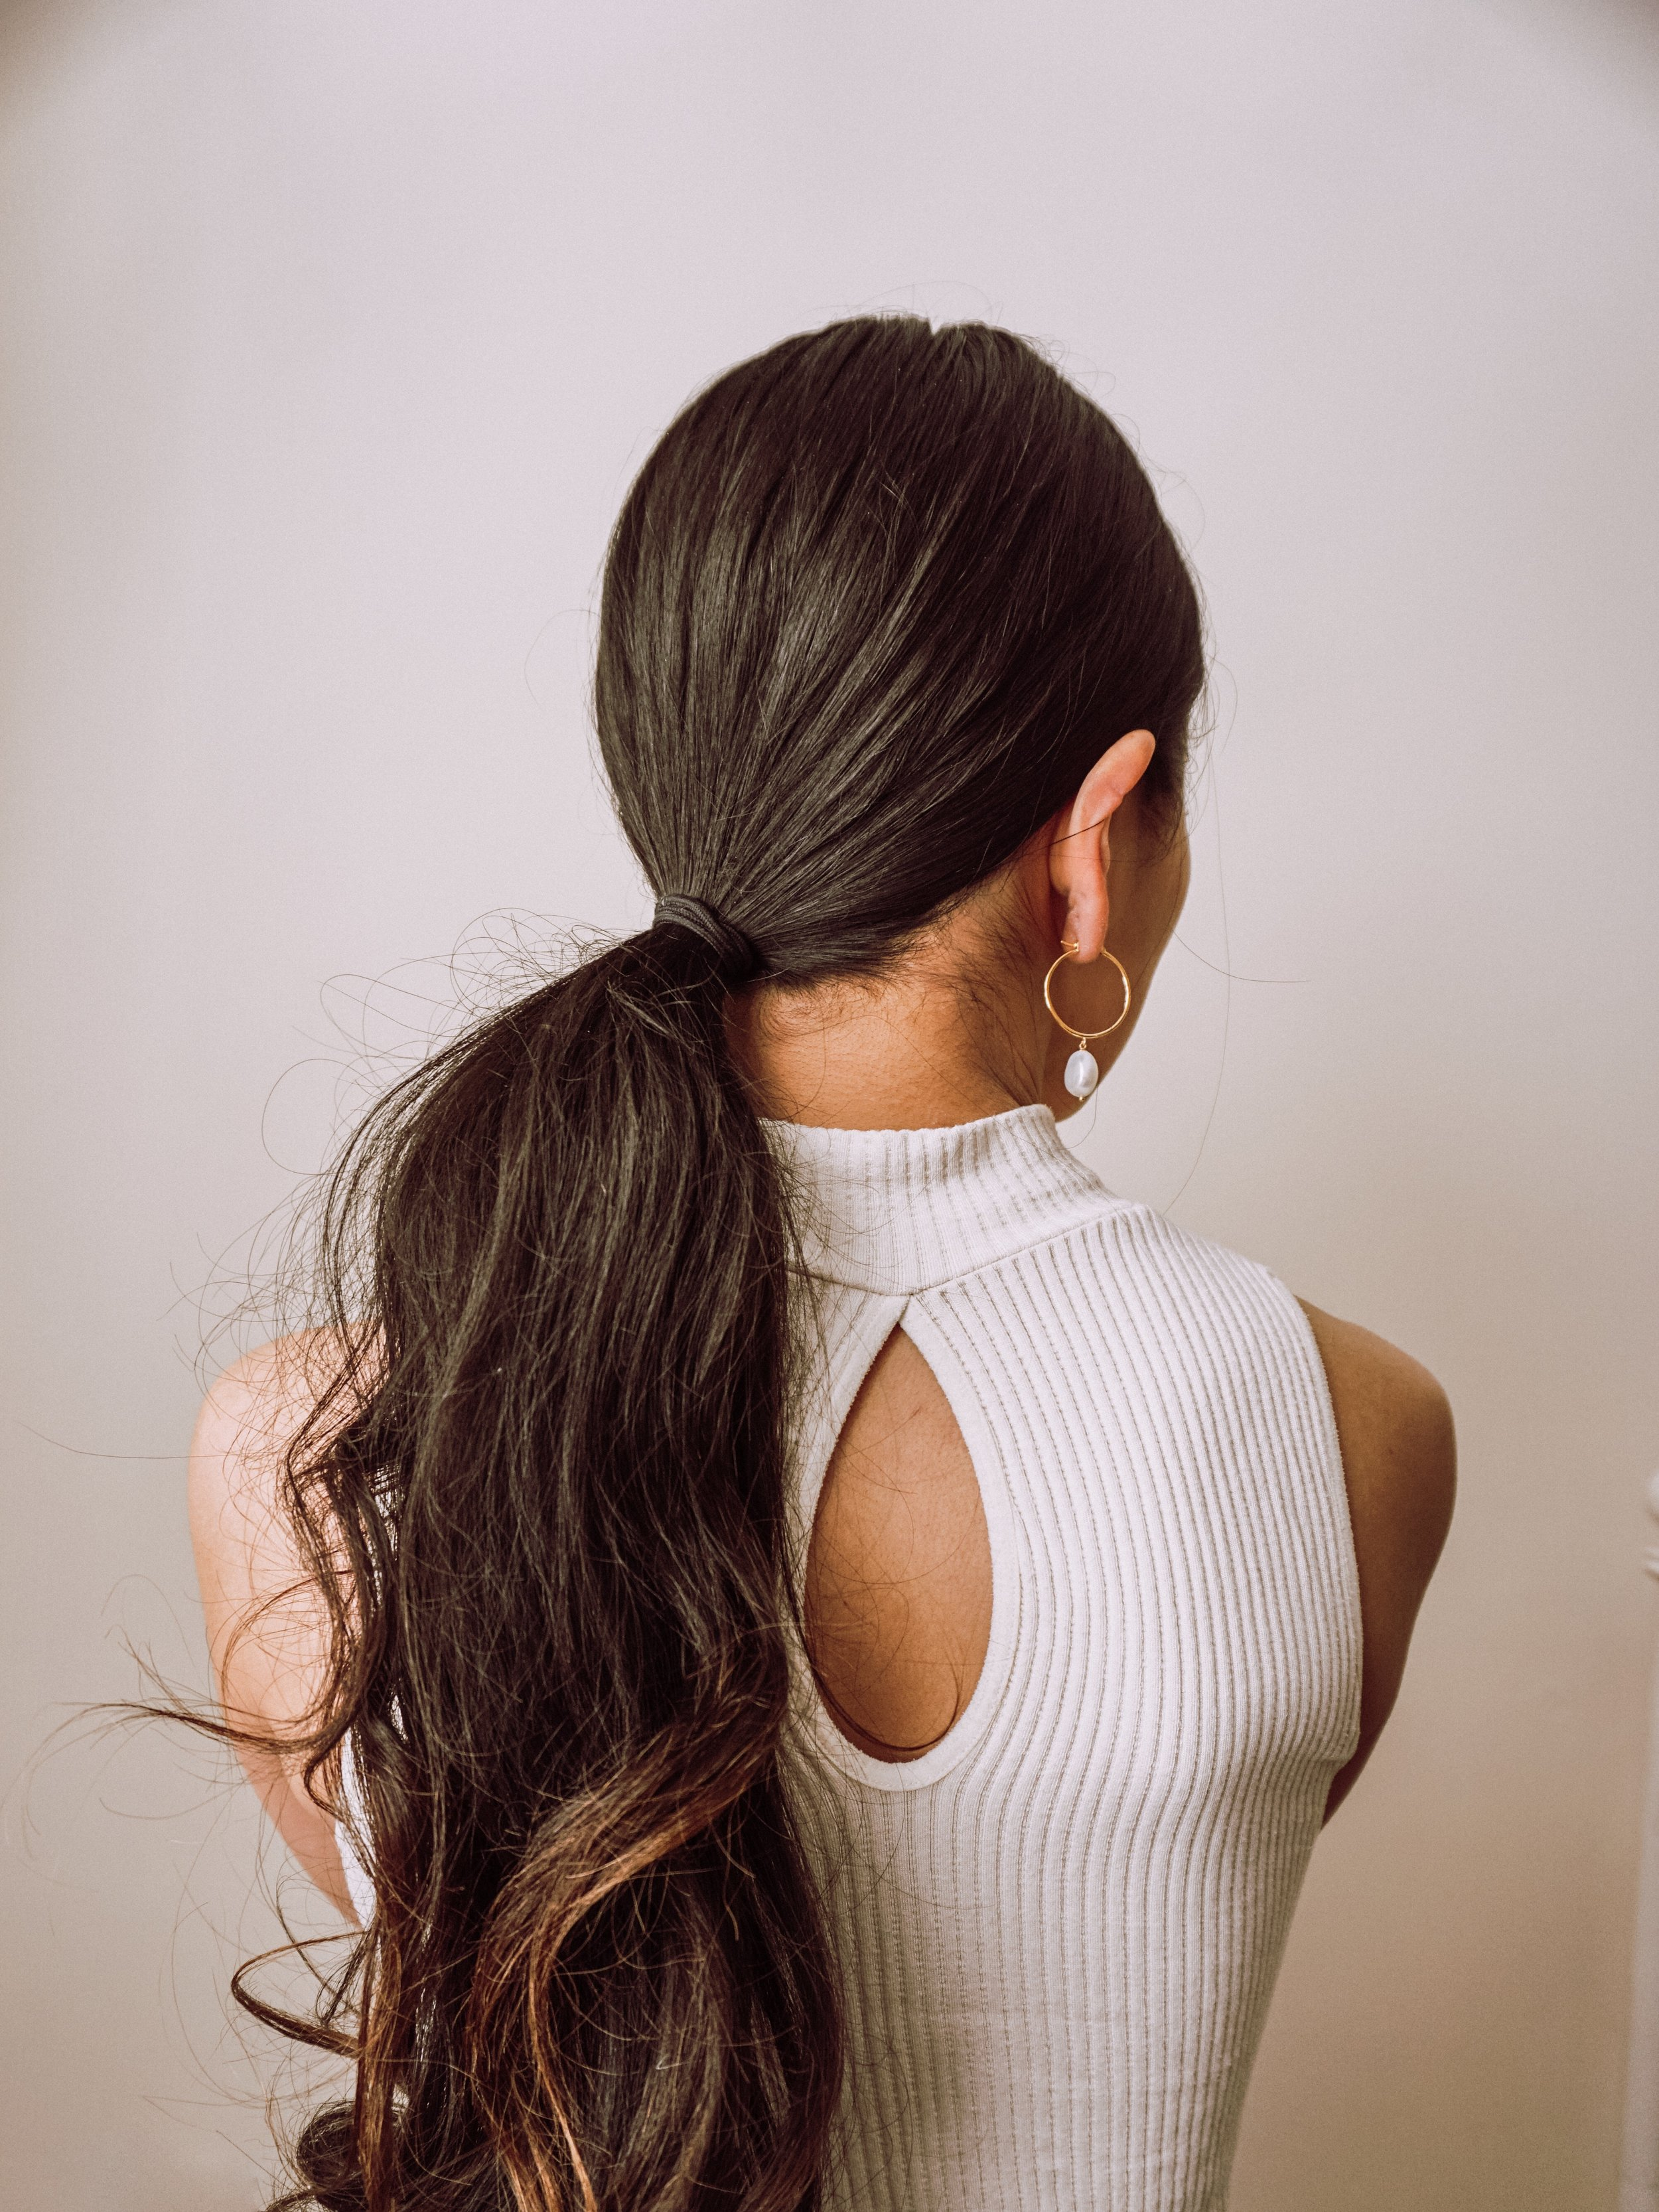 1: Make a ponytail - It works with either high or low ponytail